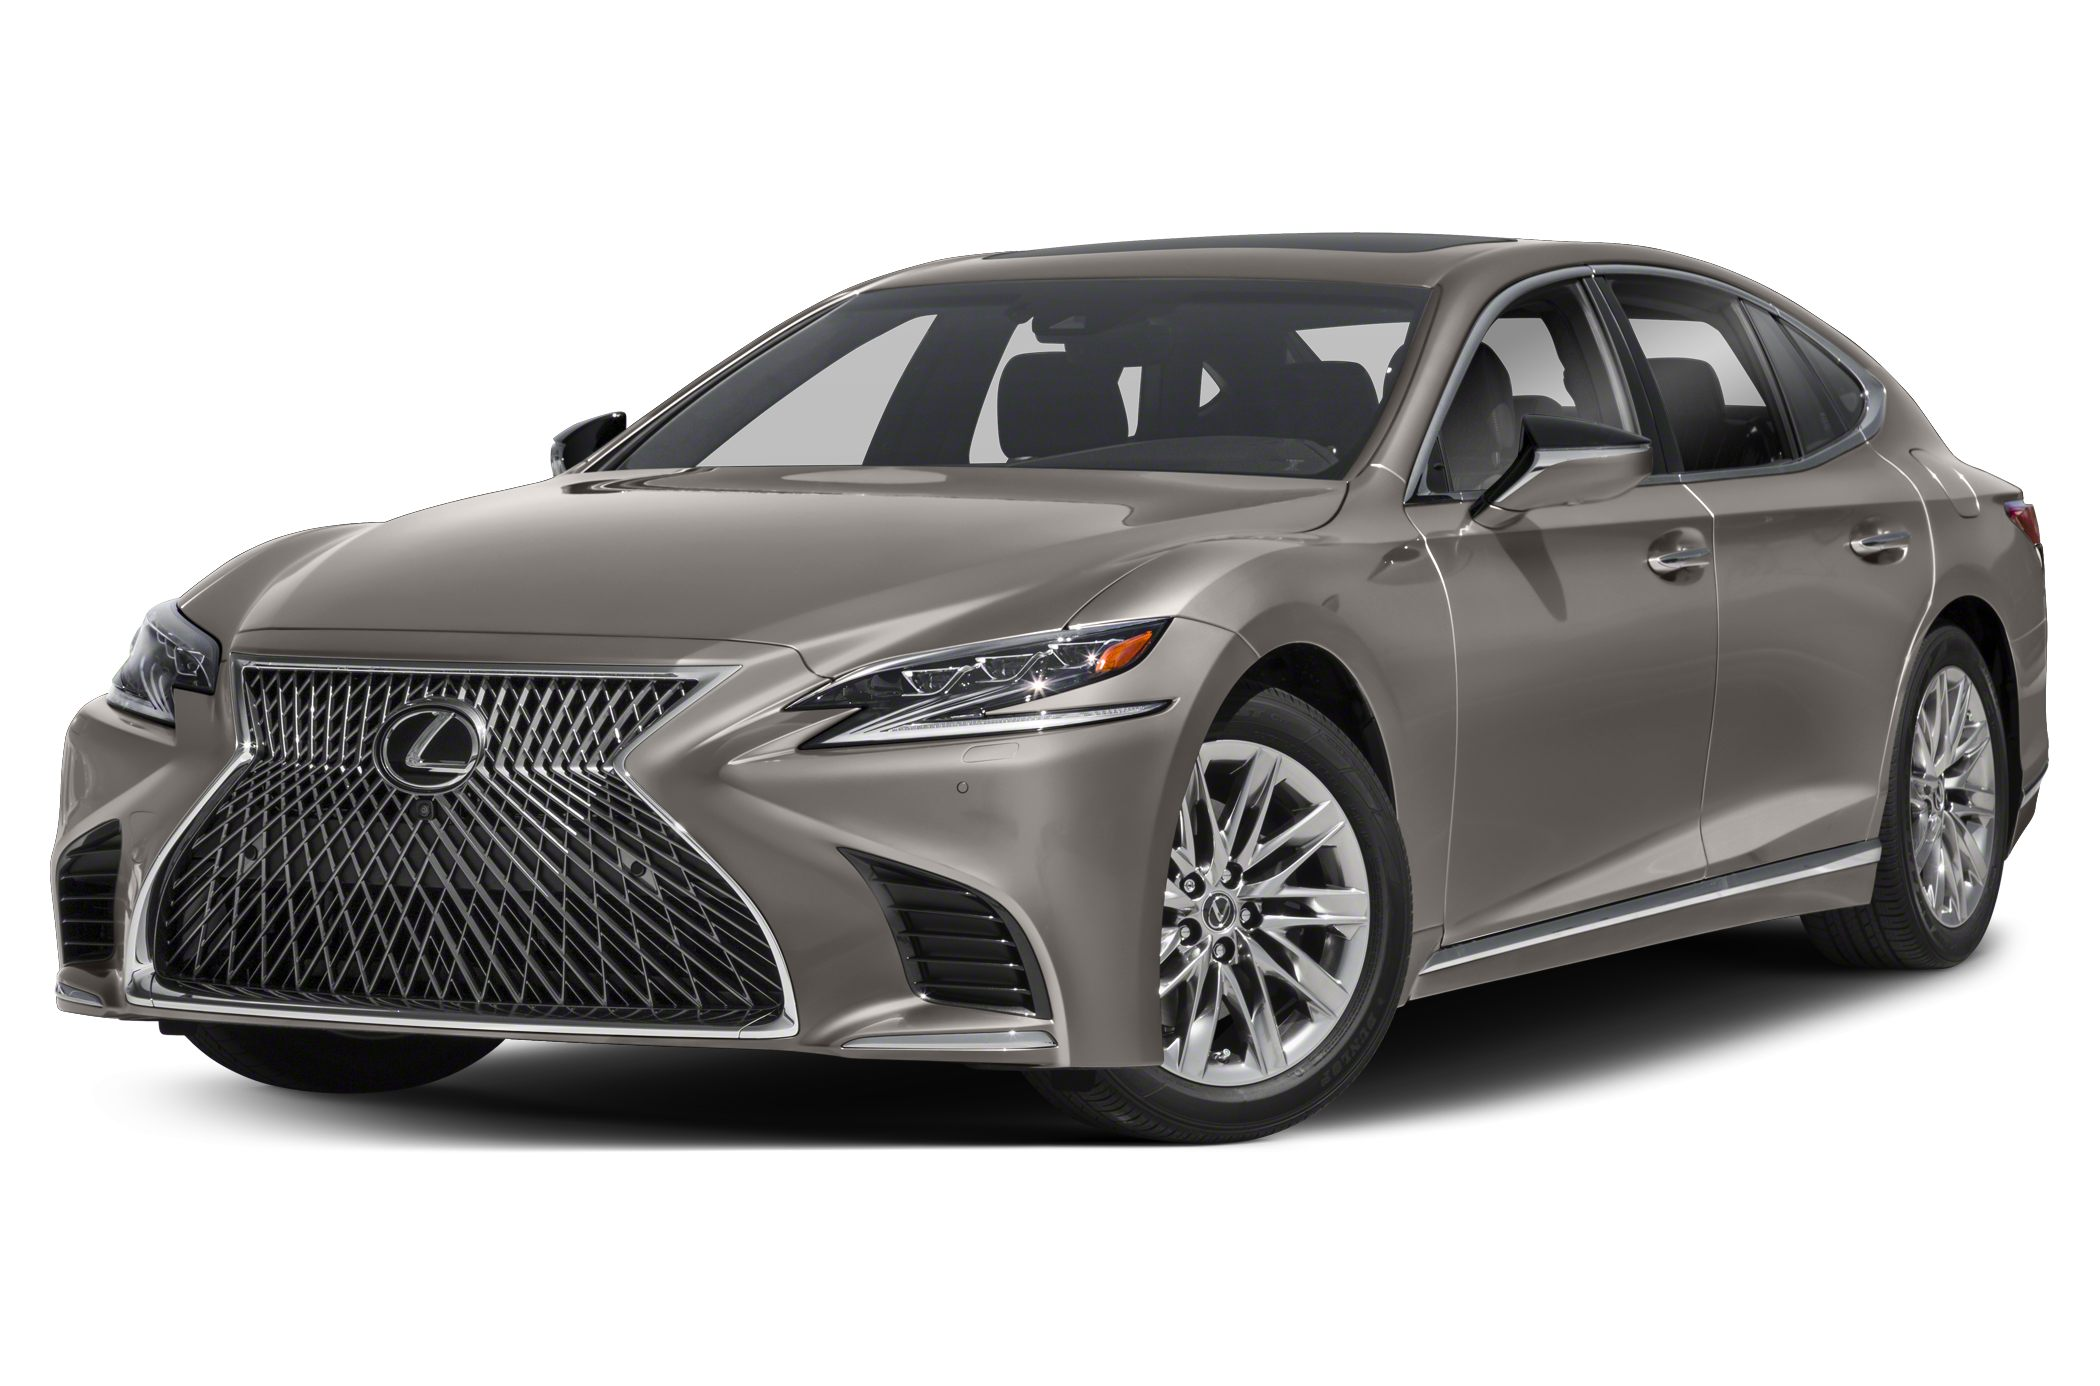 Cars for Sale Under 10000 Houston Awesome Houston Tx Used Lexuses for Sale Under 10 000 Miles and Less Than